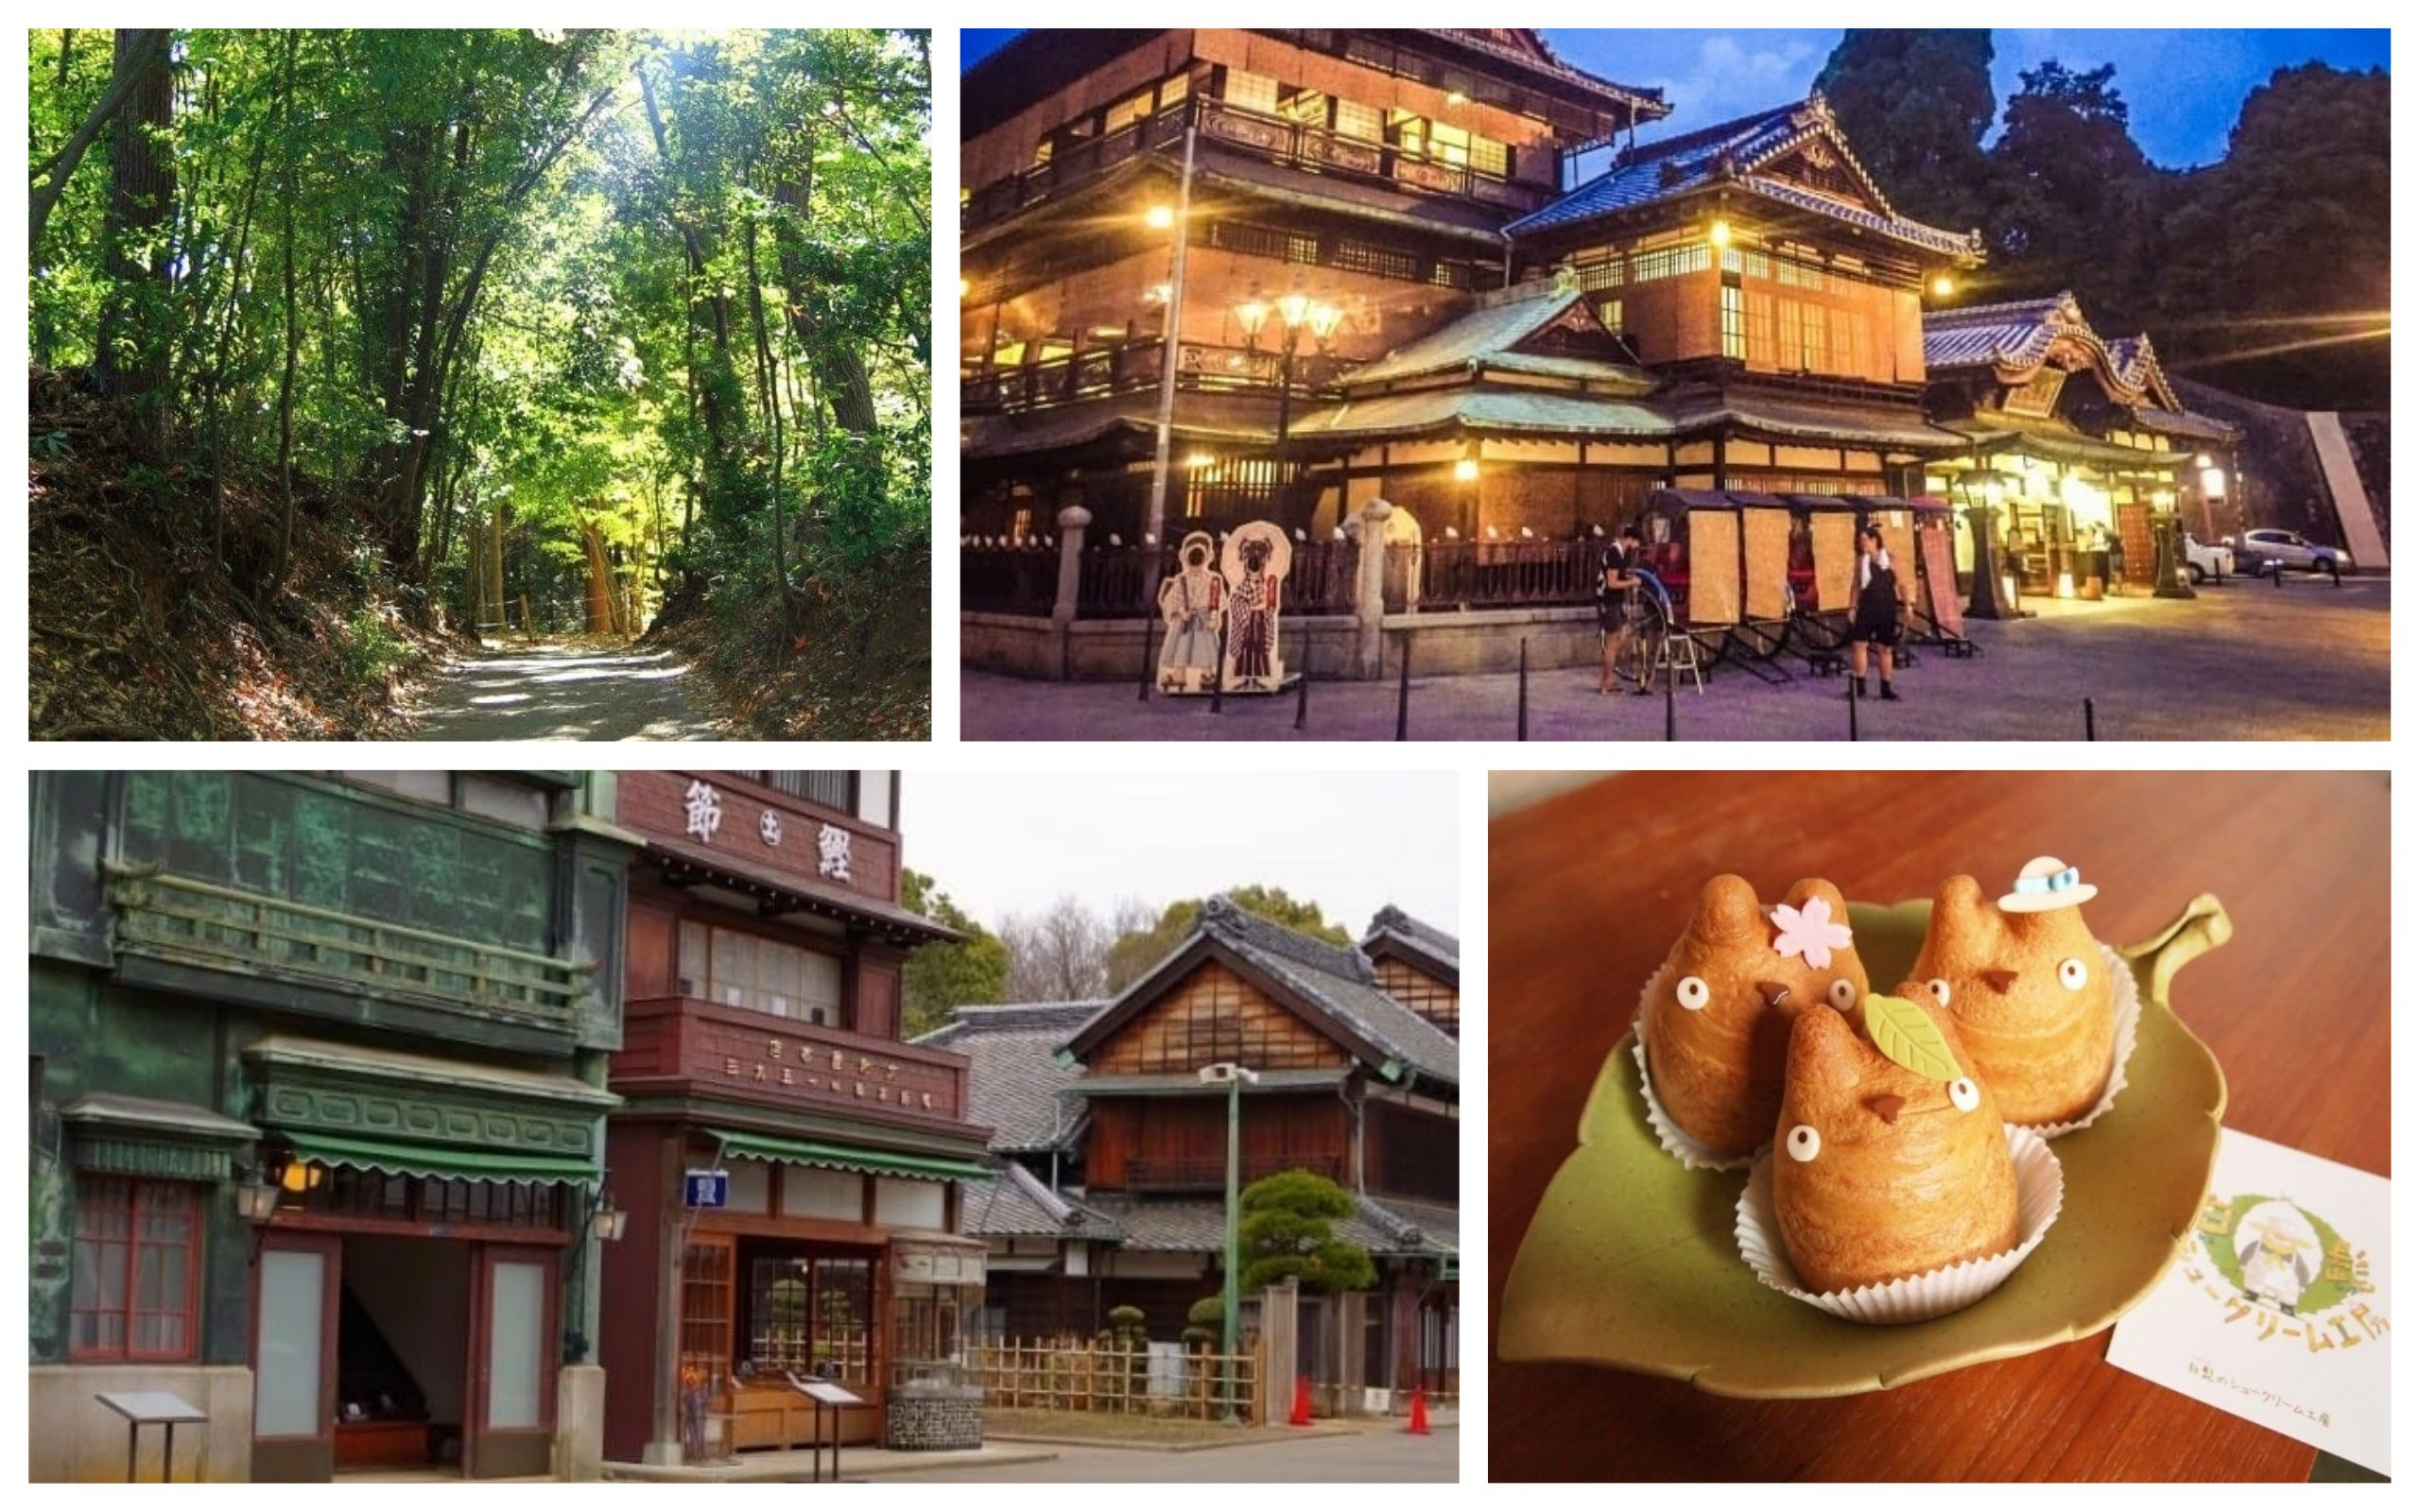 15 Studio Ghibli Related Places You Must Visit While In Japan Matcha Japan Travel Web Magazine